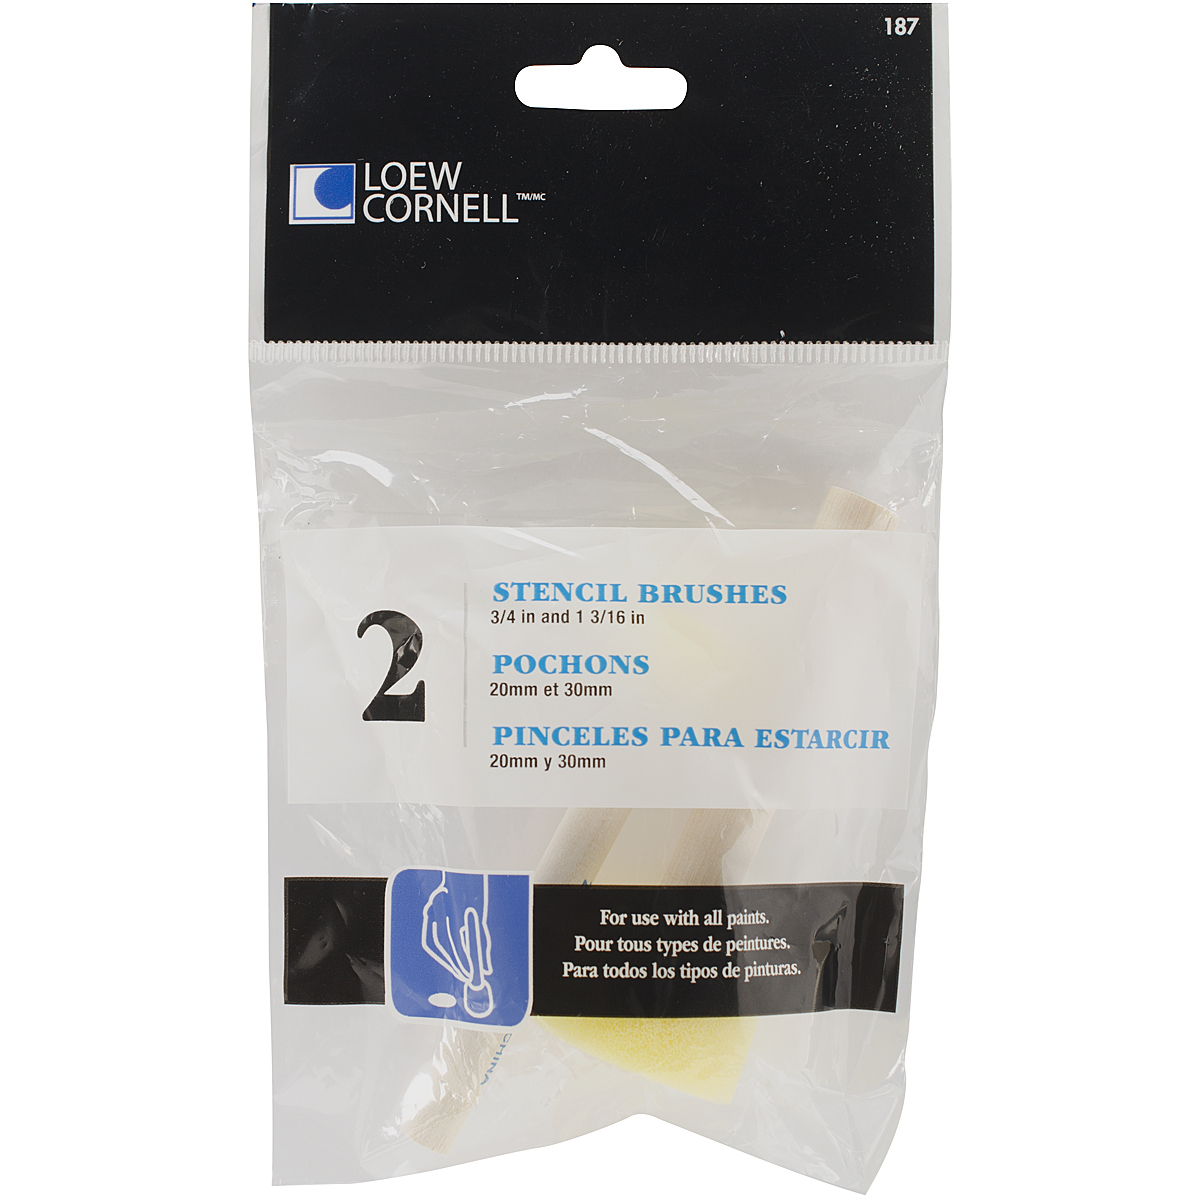 Loew-Cornell Round Sponge Stencil Brushes, 20mm/30mm, 2-Pack Multi-Colored